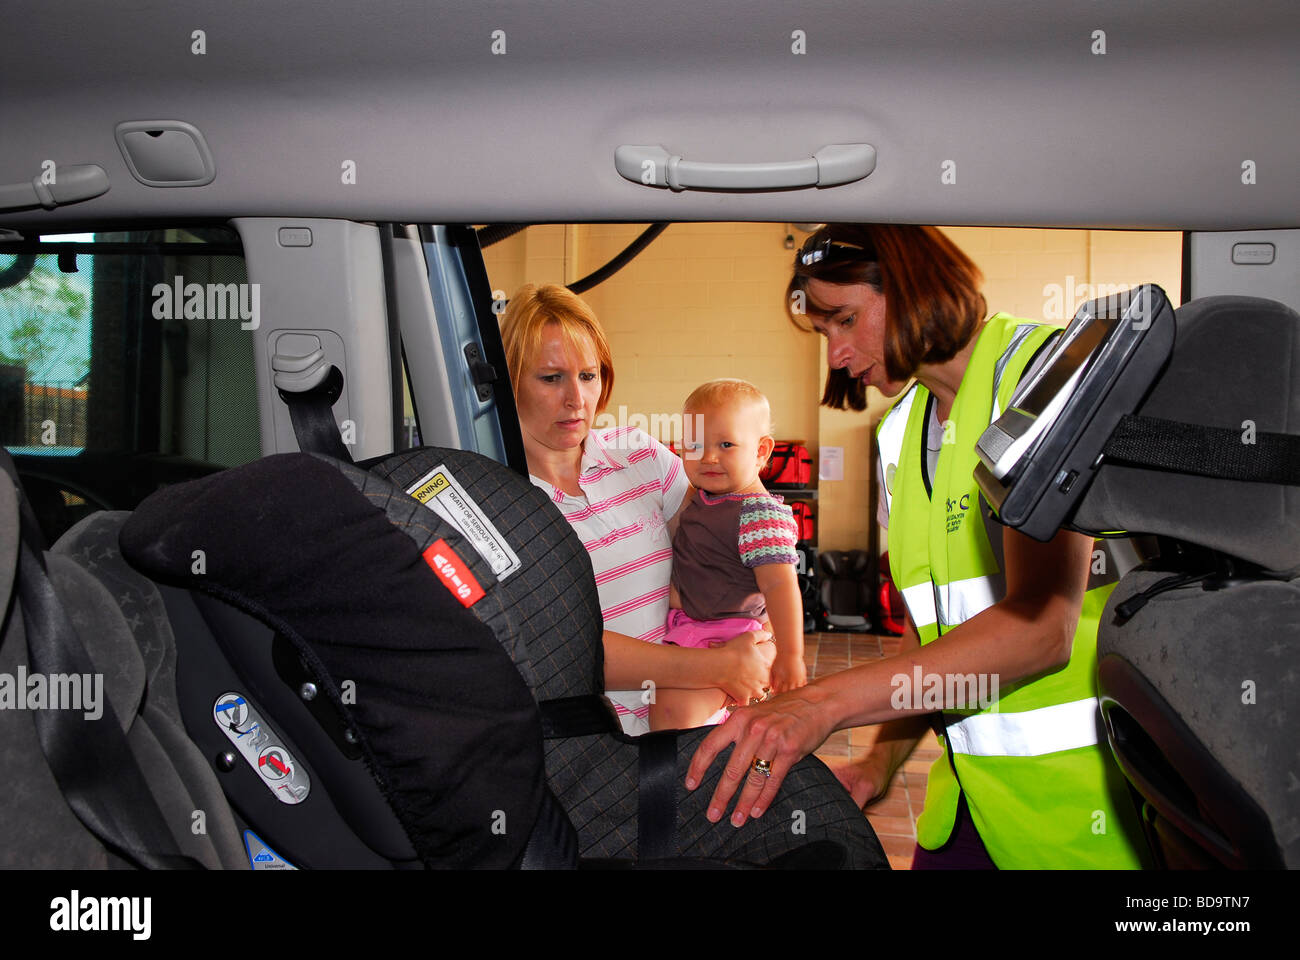 Baby Car Seat Uk Child Car Seat Uk Stock Photos Child Car Seat Uk Stock